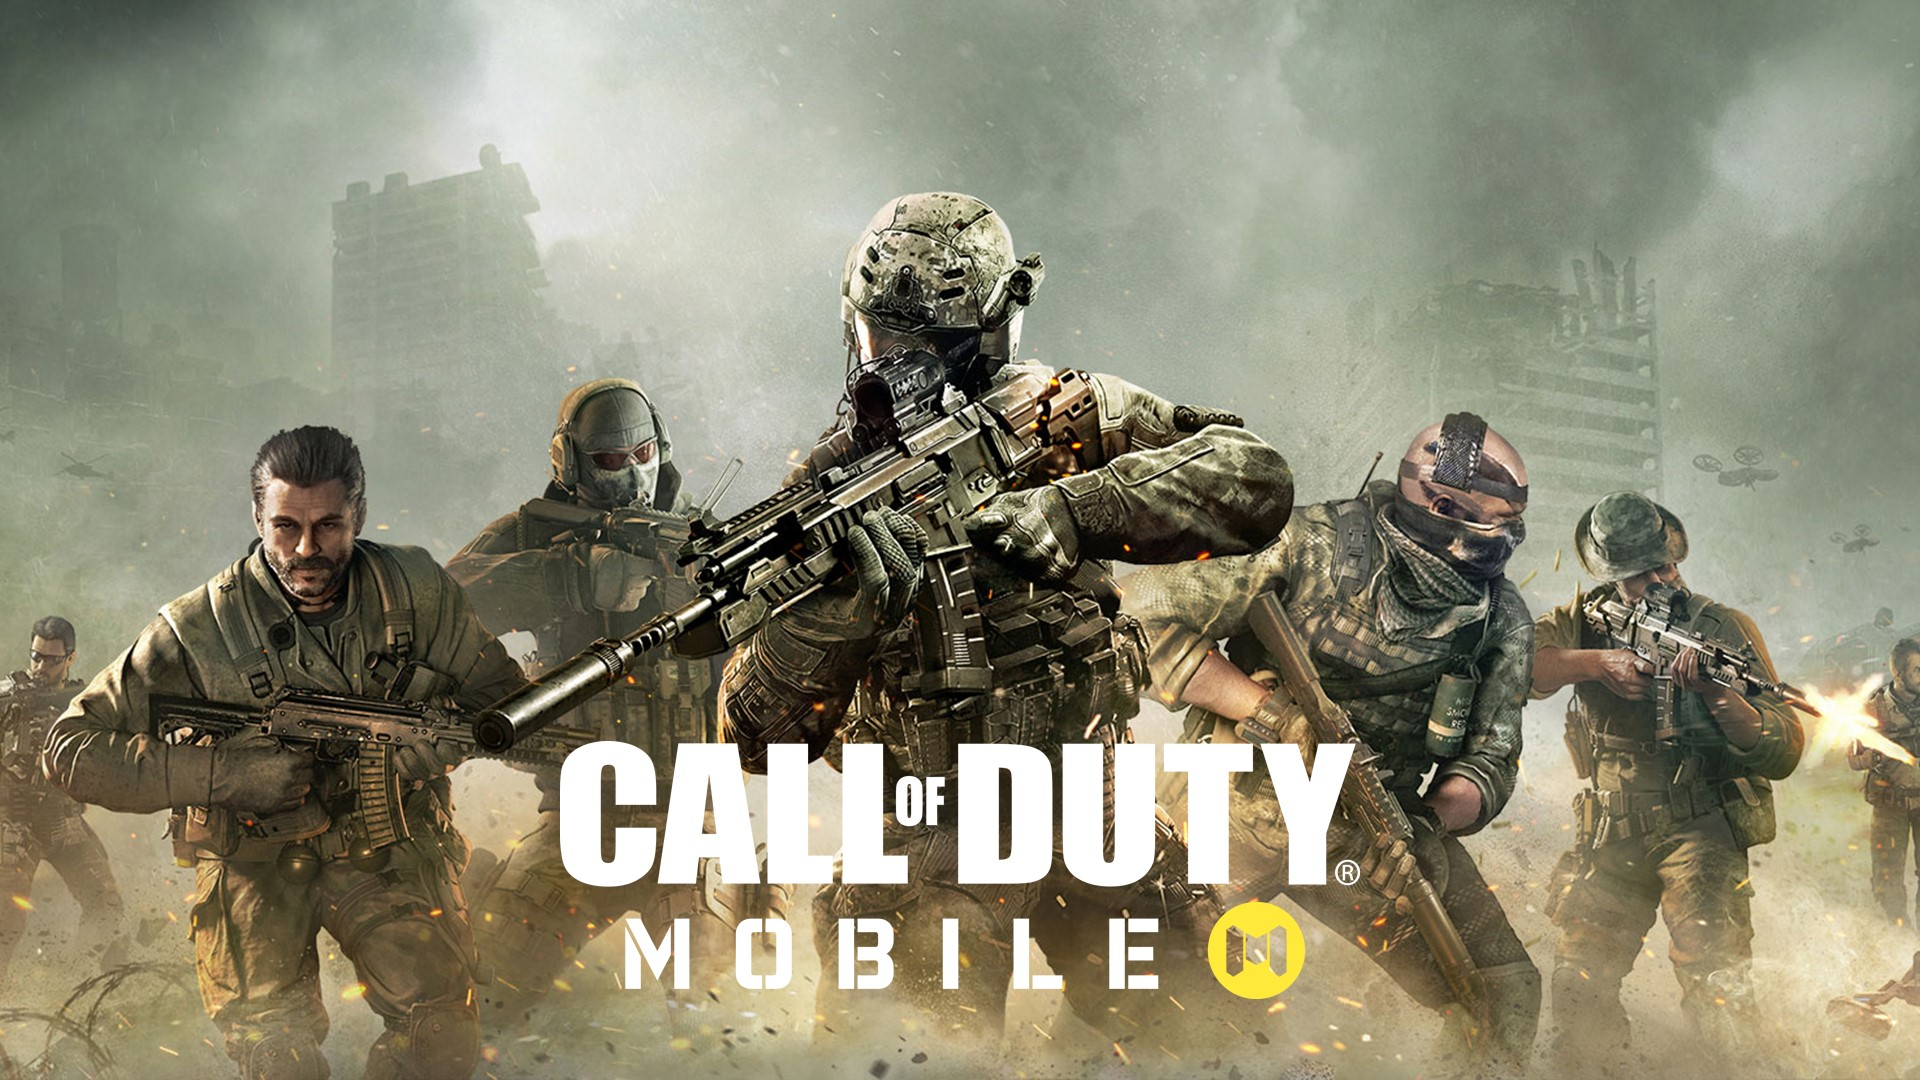 Call of Duty Mobile Wallpapers Mobile Mode Gaming 1920x1080